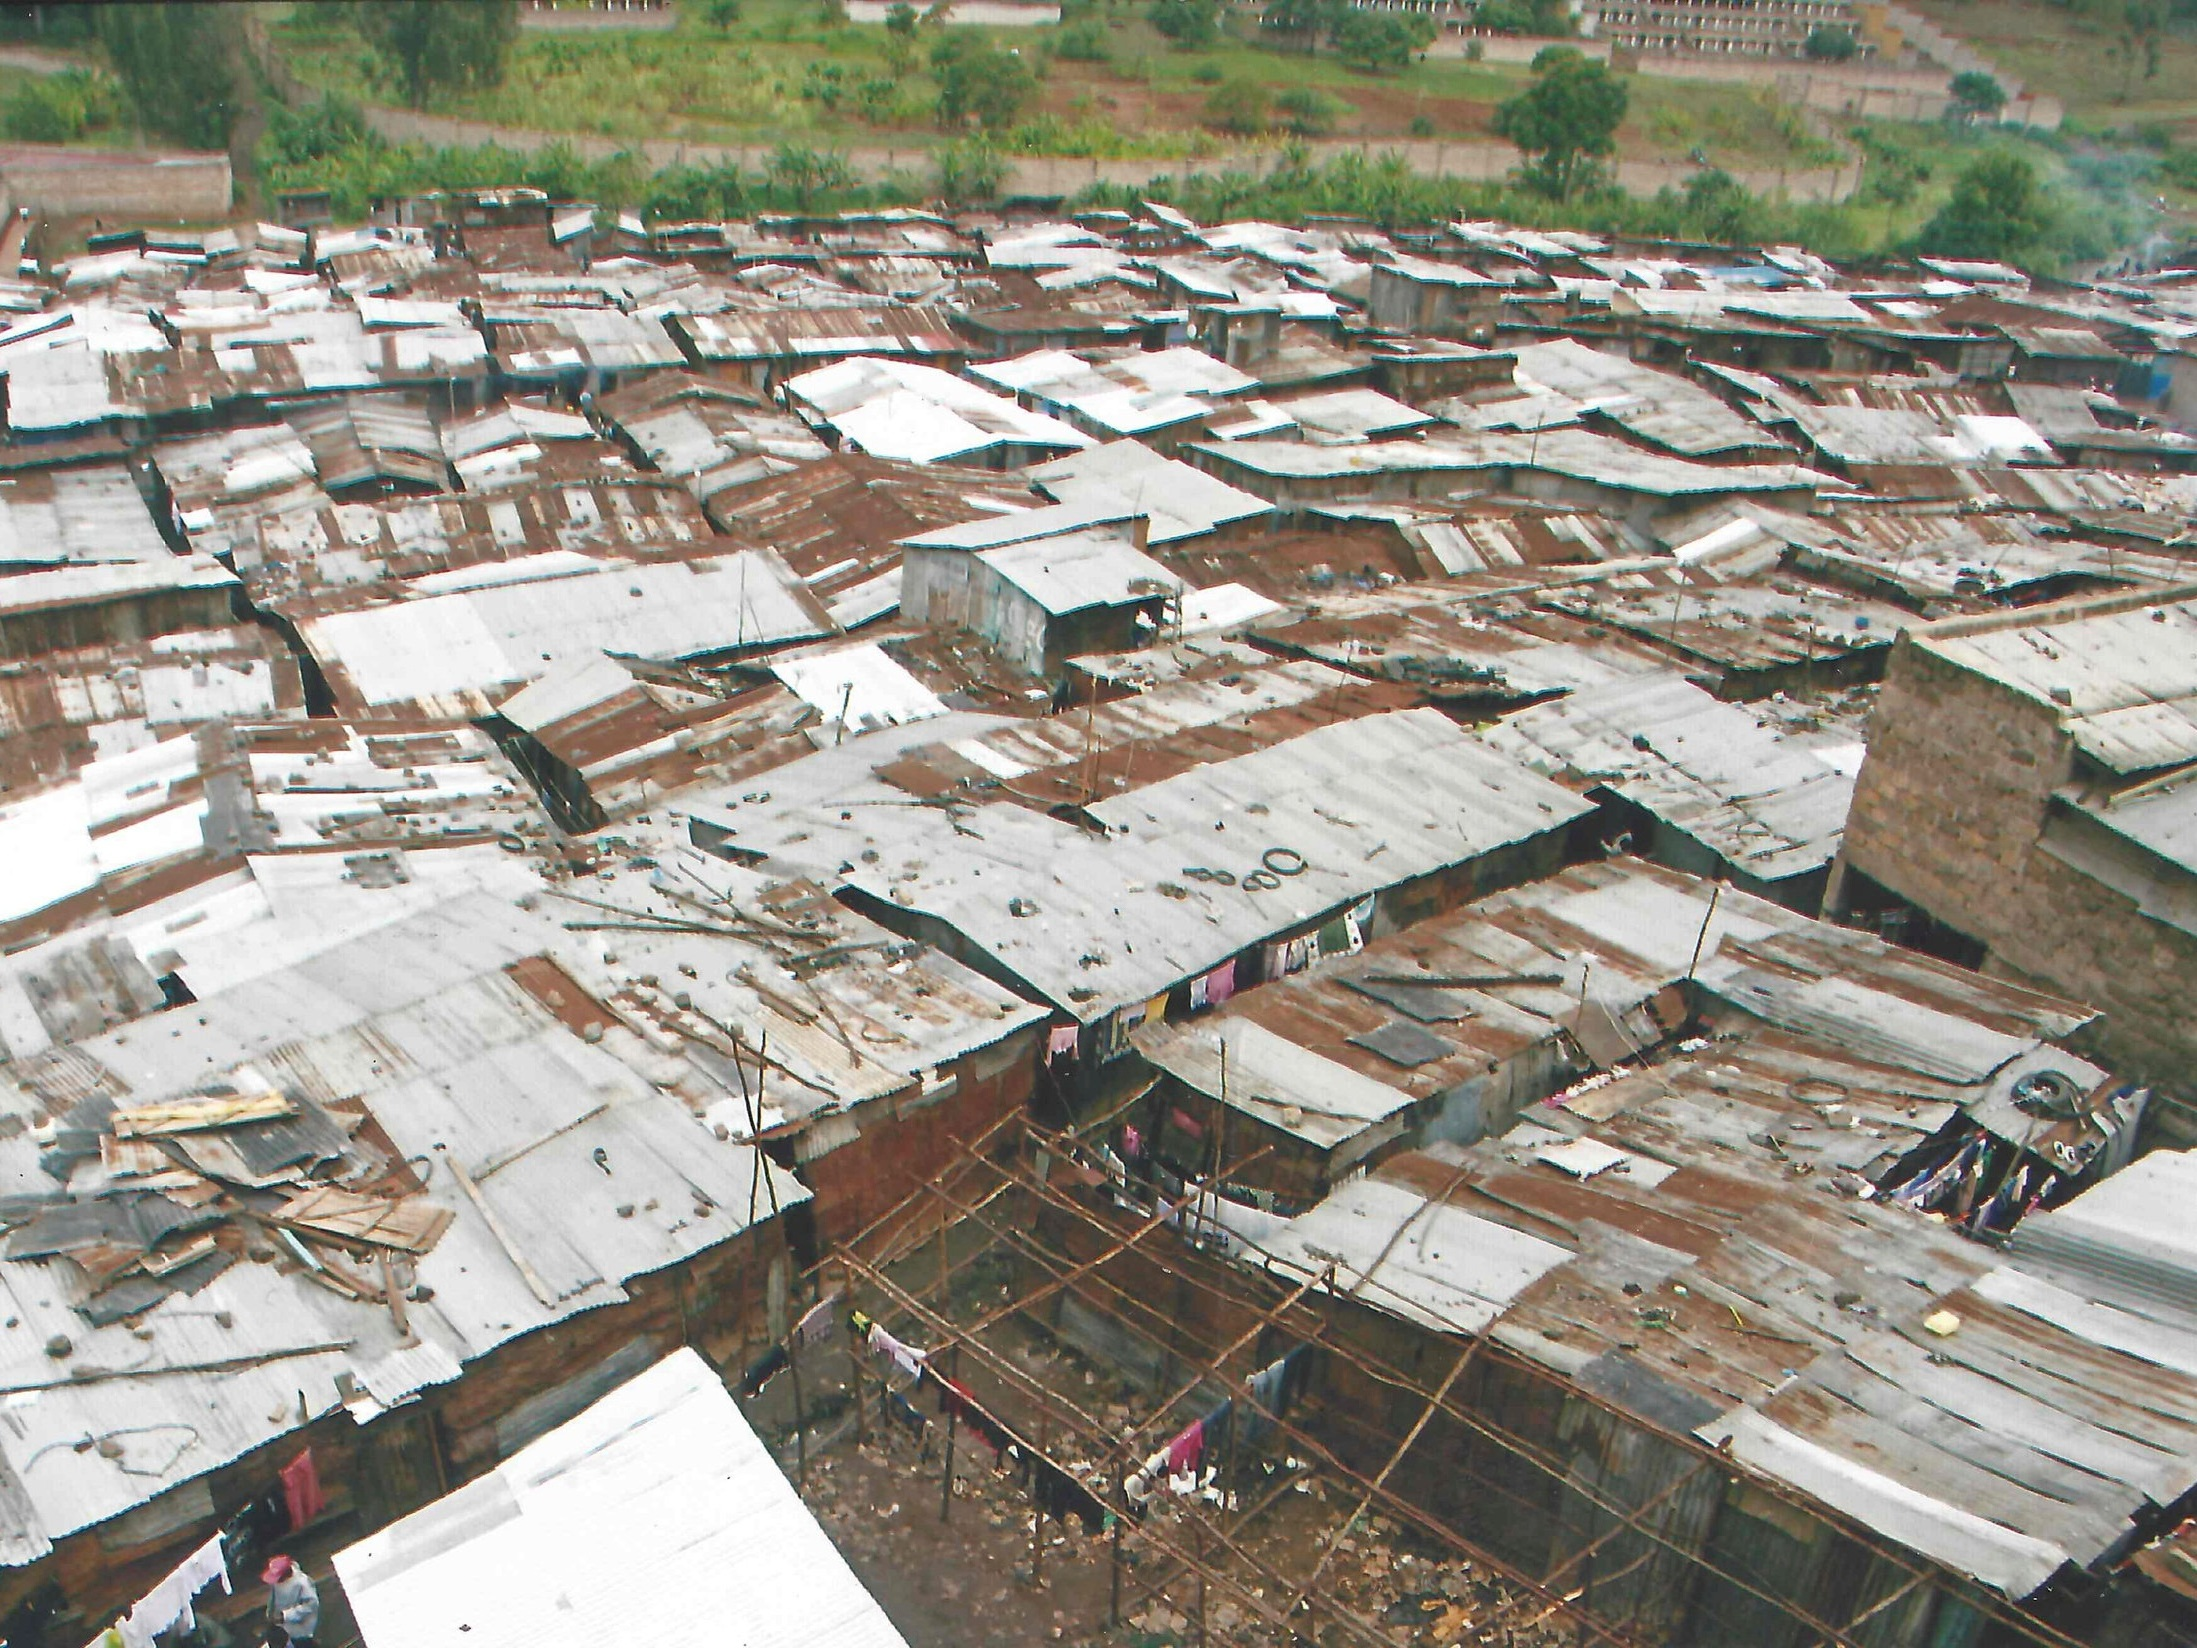 Kiamutisyia village in Mathare, Nairobi (opposite the mental hospital). This was one of the first slums in Nairobi, occupied from 1995 by landless and displaced Kenyans who had been evicted by the colonial government from squatting in City Park. Source (photo and caption): Emily Wangari, Muungano Mathare.